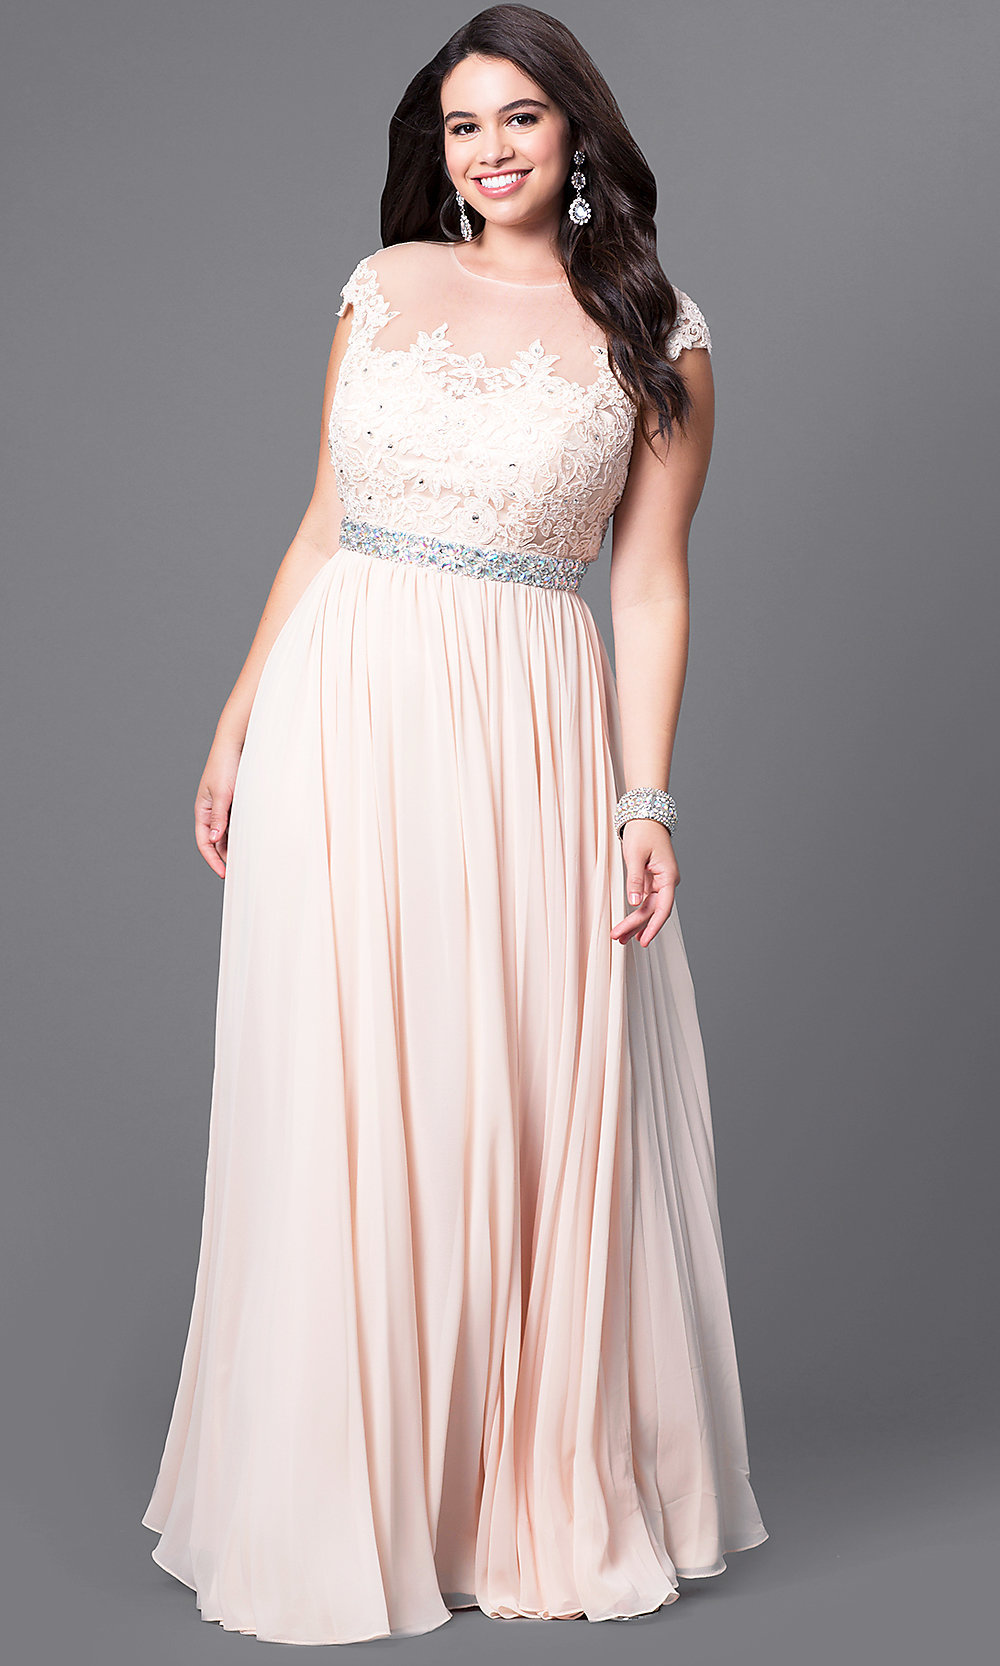 Plus Size Prom And Party Dresses Between 100 And 200 Promgirl